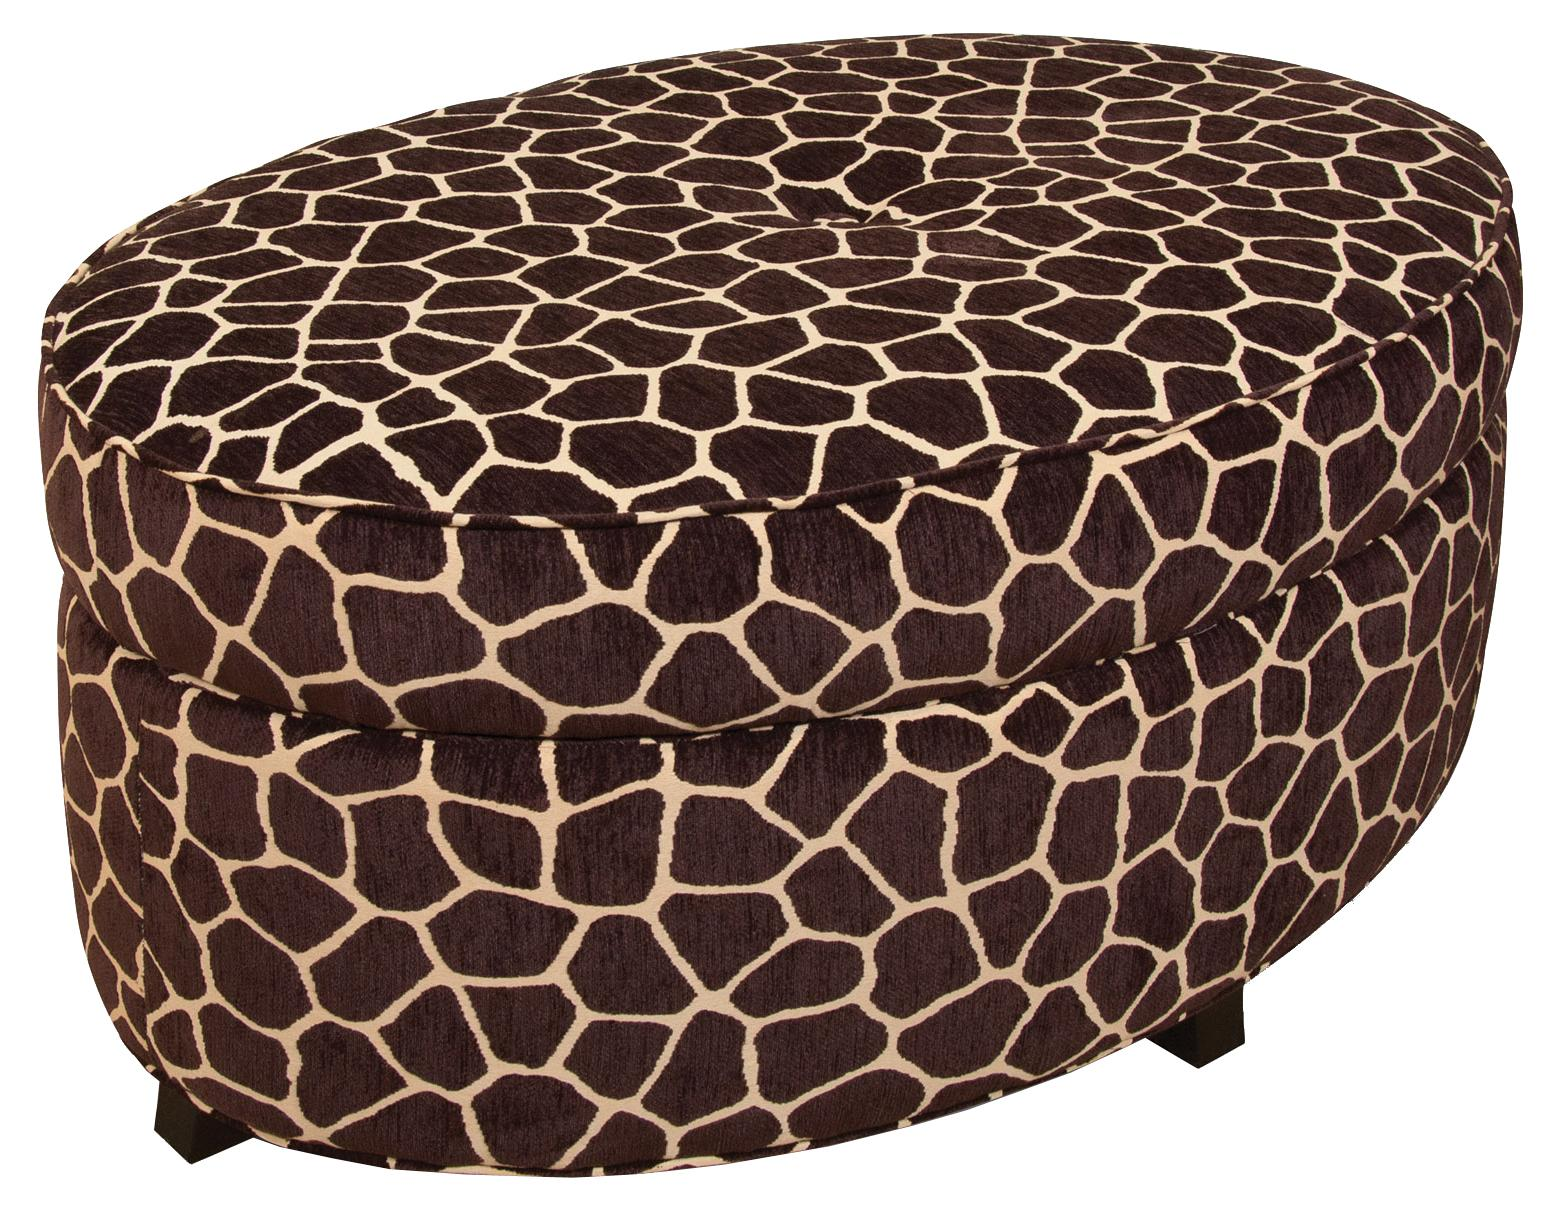 Betty Betty Storage Ottoman by England at Virginia Furniture Market